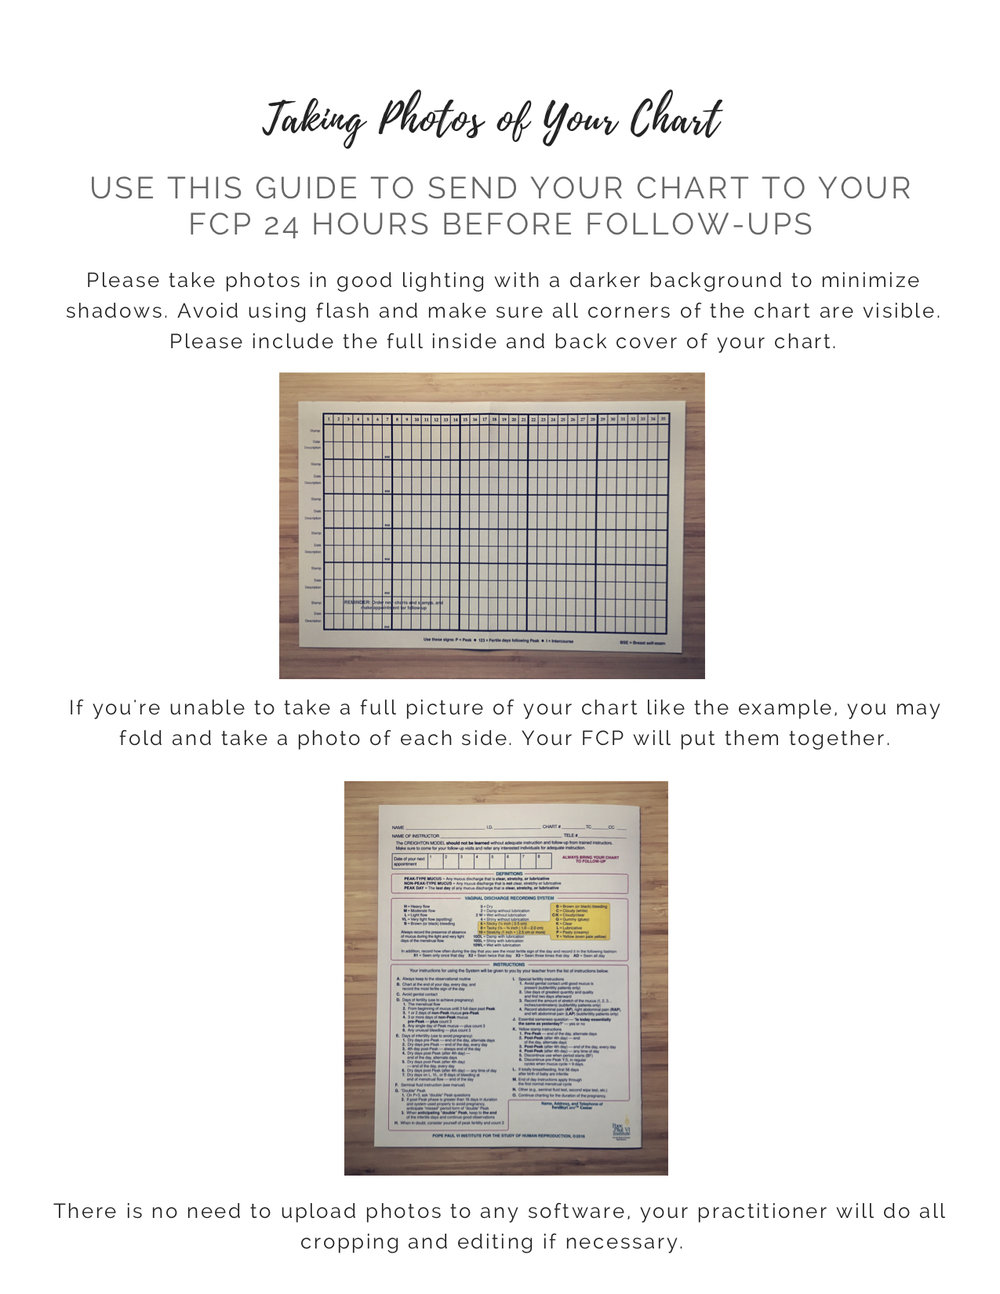 How to Send Pictures of Your Chart.jpg